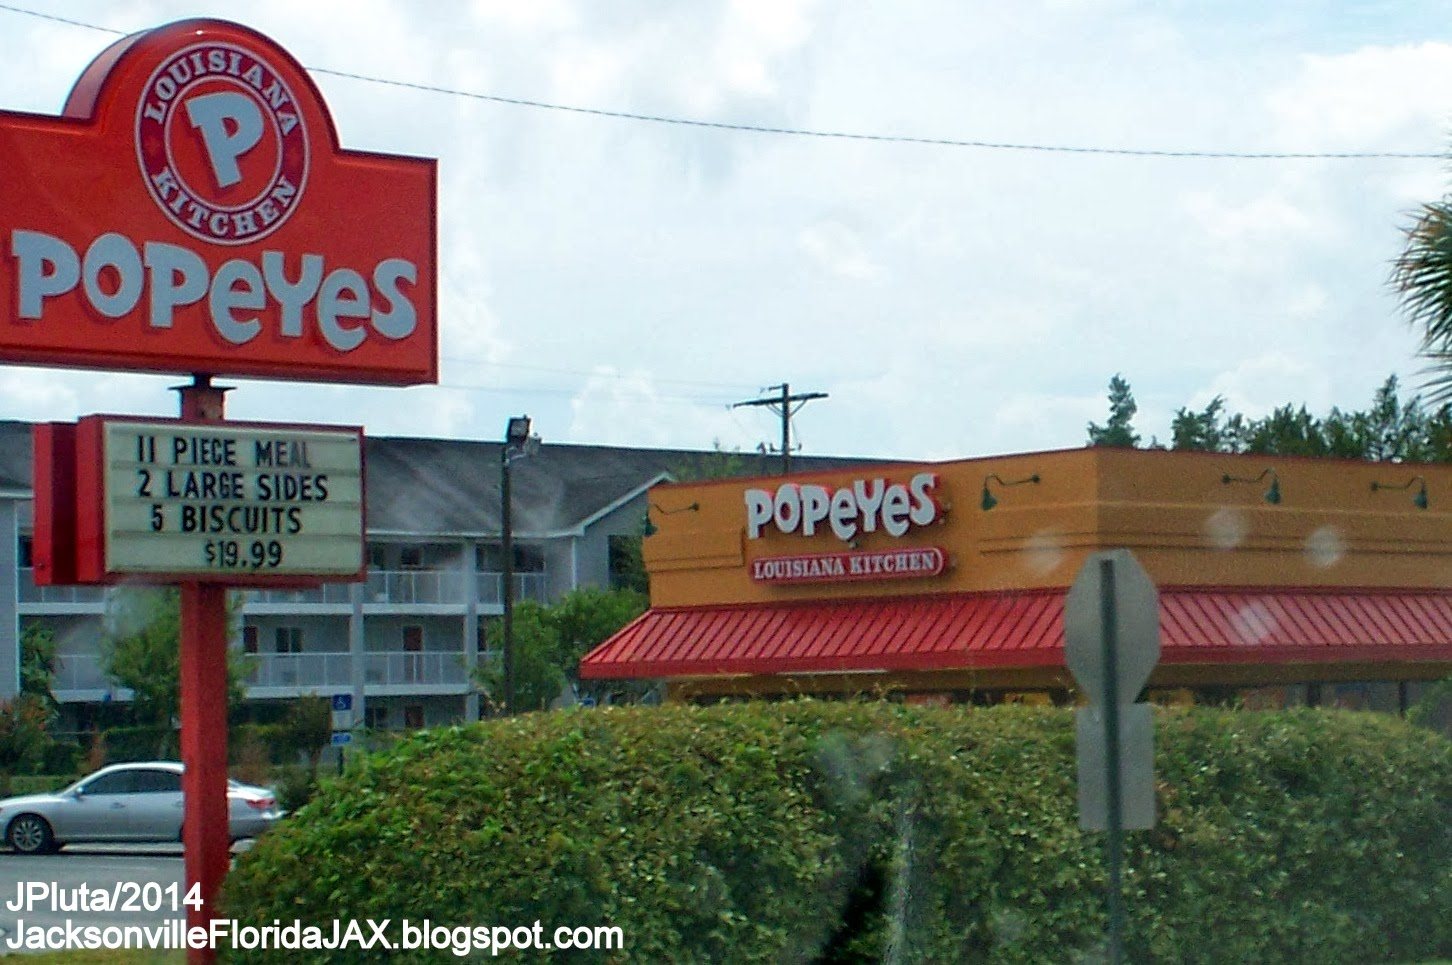 Popeyes Louisiana Kitchen Food jacksonville florida jax beach restaurant attorney bank hospital